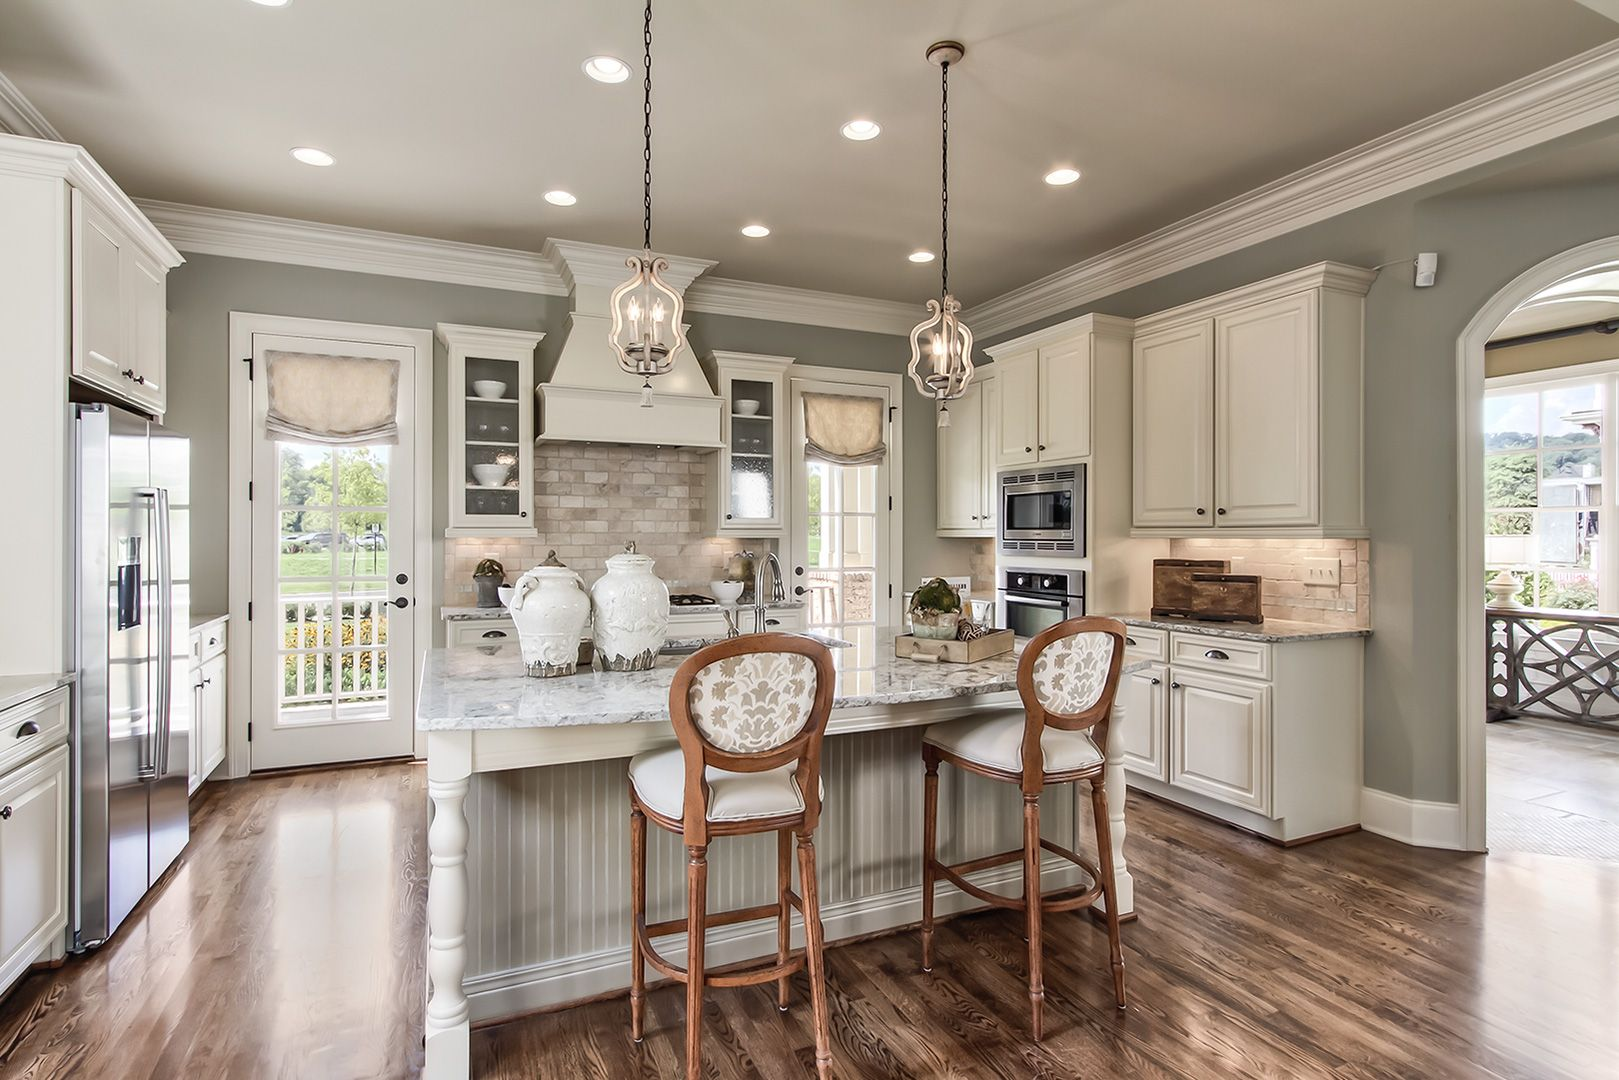 LOVE LOVE LOVE LOVE THIS KITCHEN!!!!! - MY FAVORITE ...